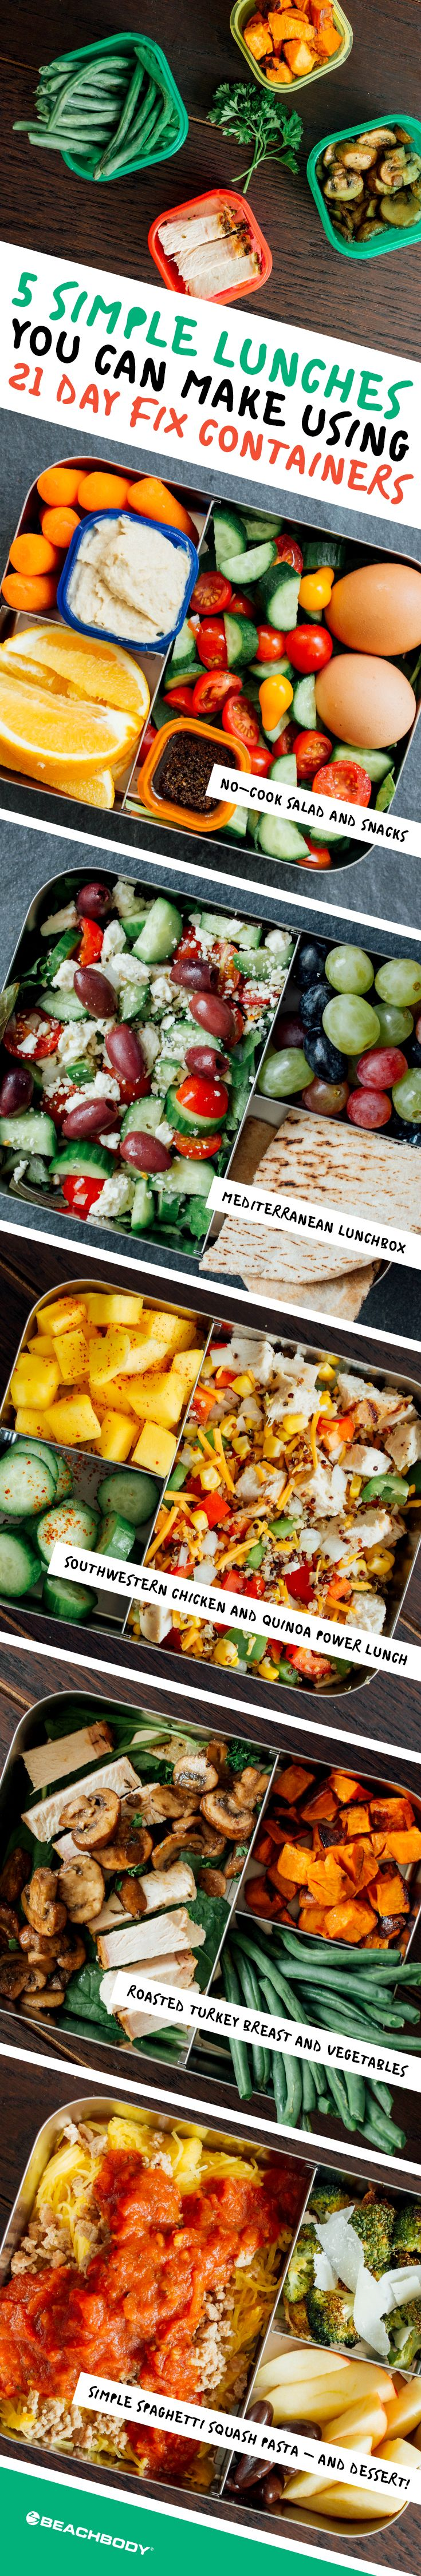 5 Simple Lunches You Can Make Using Portion Fix Containers (21 Day Fix Containers)